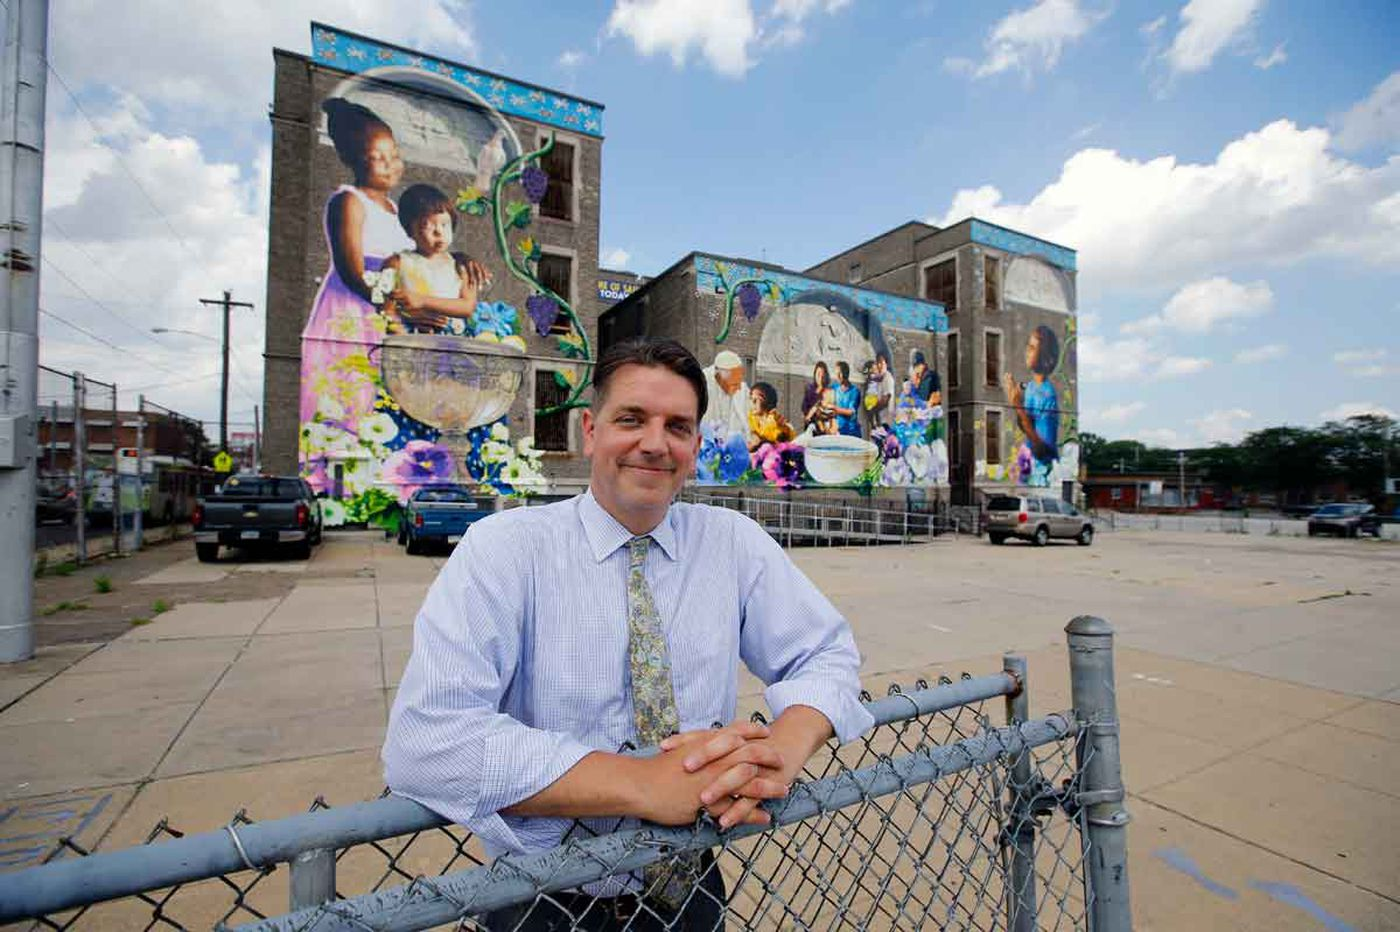 St. Malachy to receive $1 million grant to grow after move